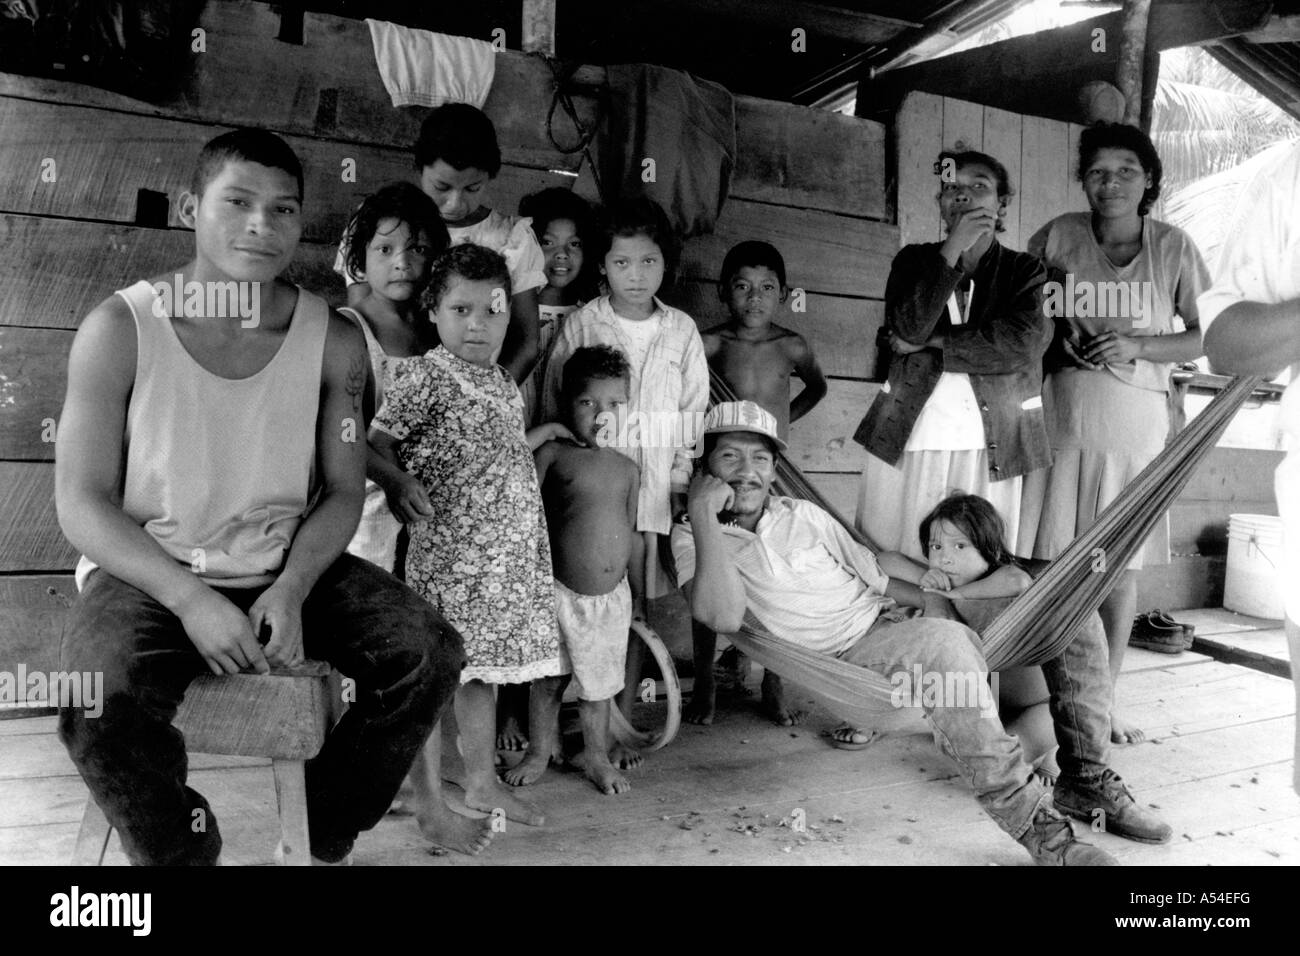 Painet hn1998 635 black and white hurricane mitch maximo hamstrung hammock family rest ordeal when flooding wiped - Stock Image